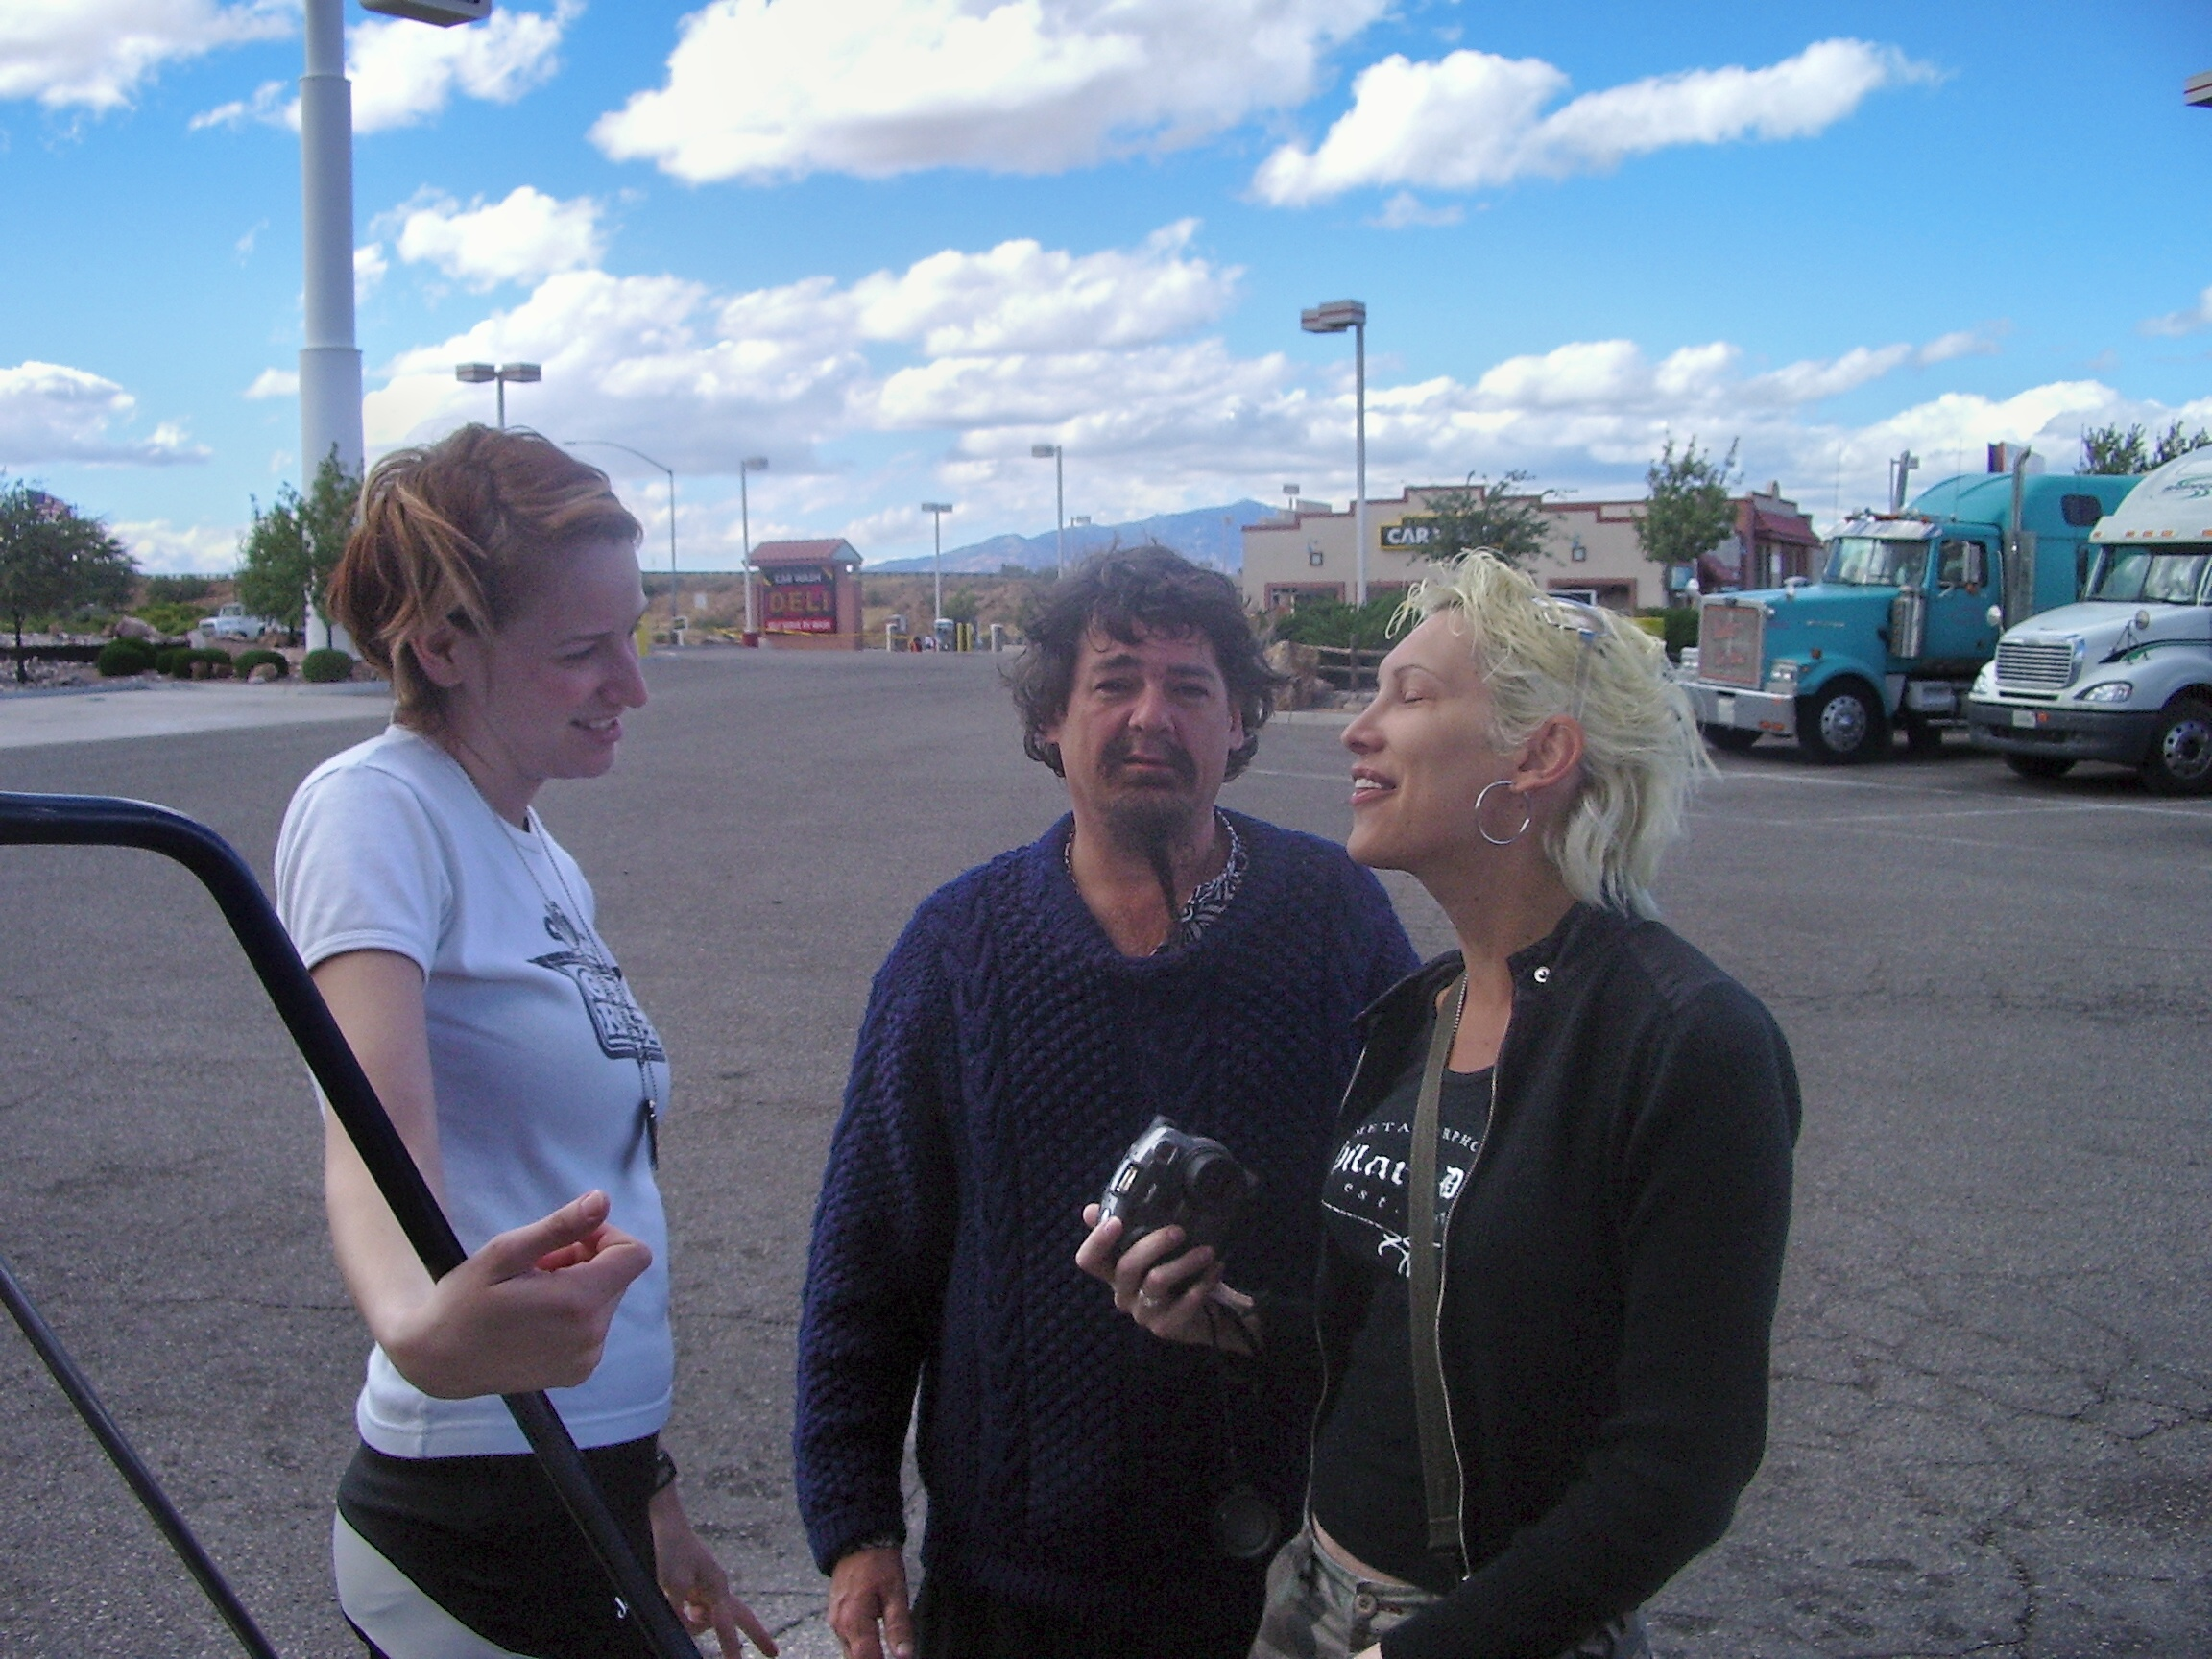 Craig and members of the crew at a desert truck stop.